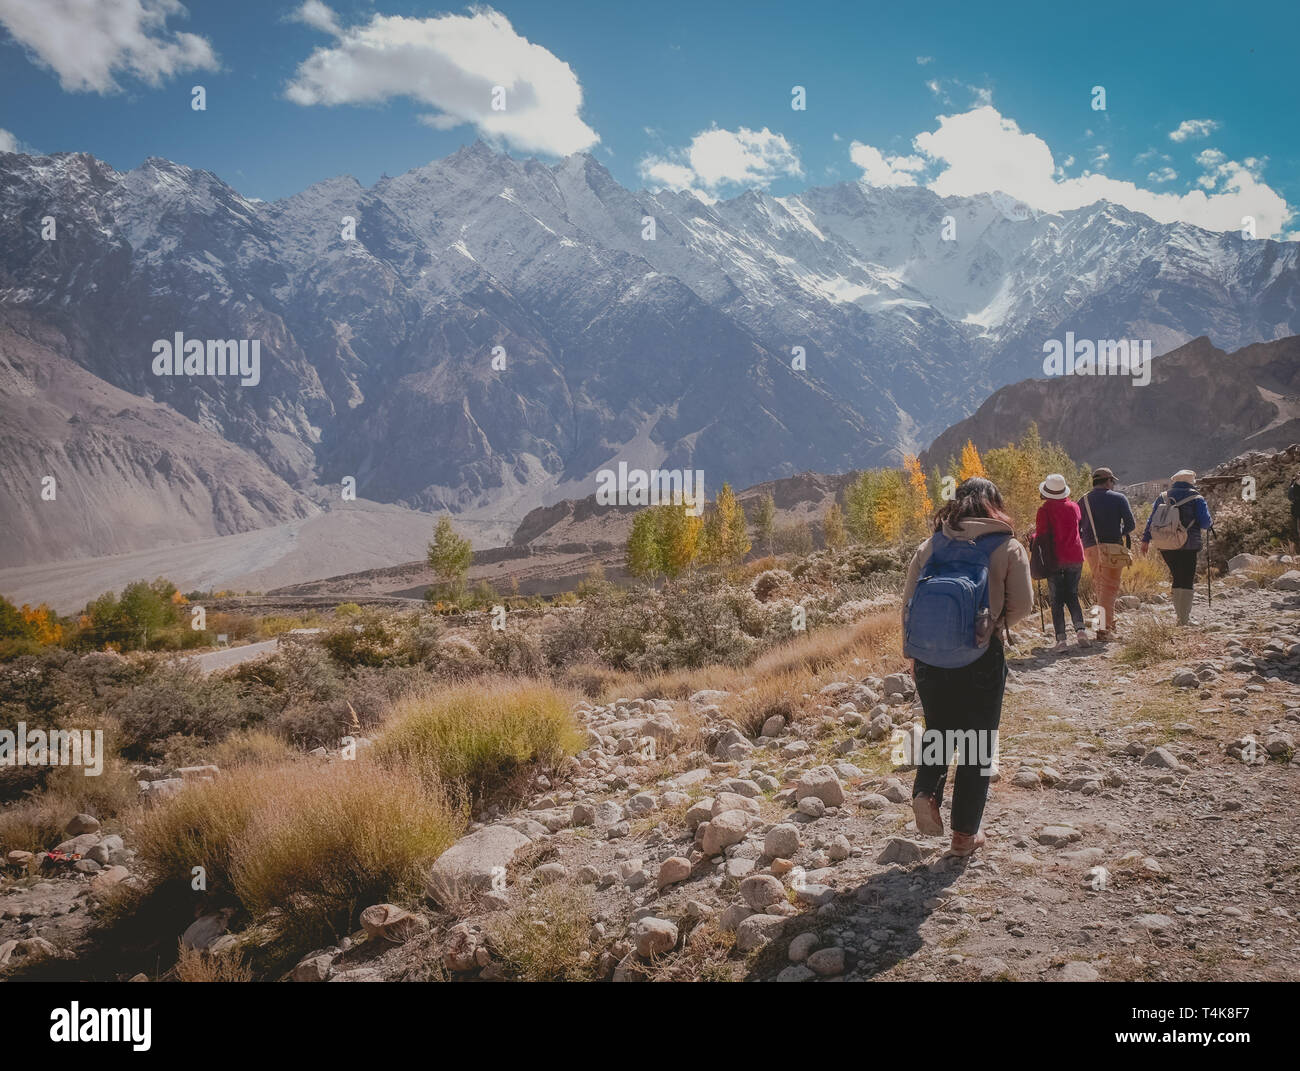 Tourists walking along the track in Passu trekking trail, surrounded by snow capped mountains in Karakoram range. Gilgit Baltistan, Pakistan. Stock Photo